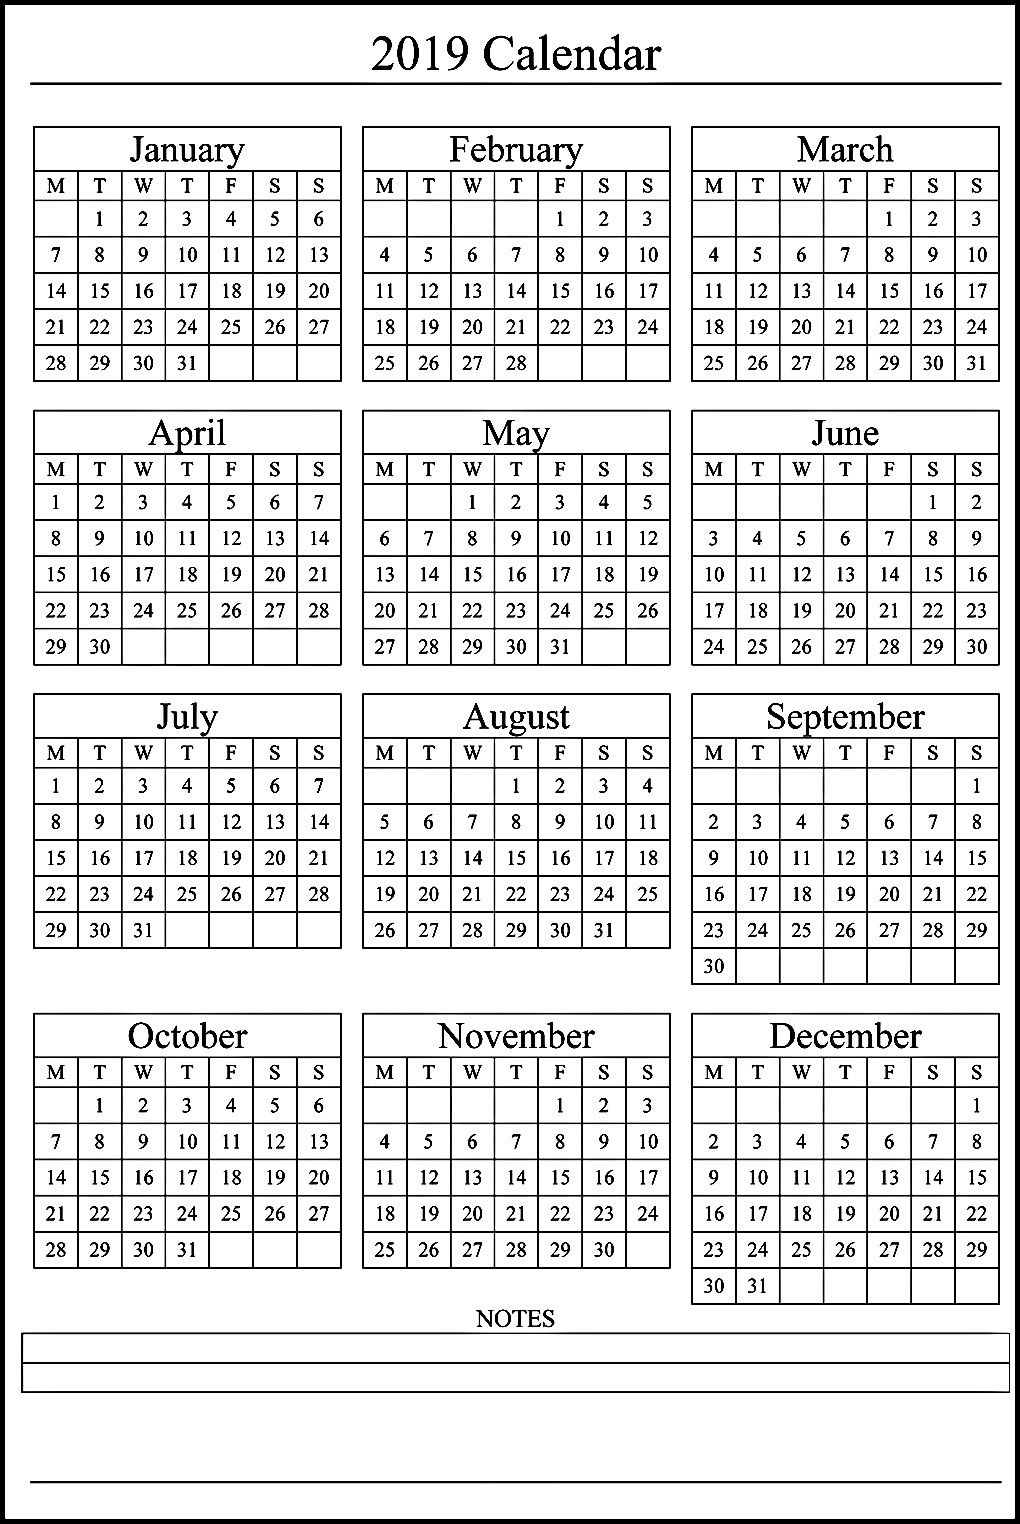 Free Yearly 12 Month Calendar One Page Template Printable with regard to Calendar Template 12 Months One Page